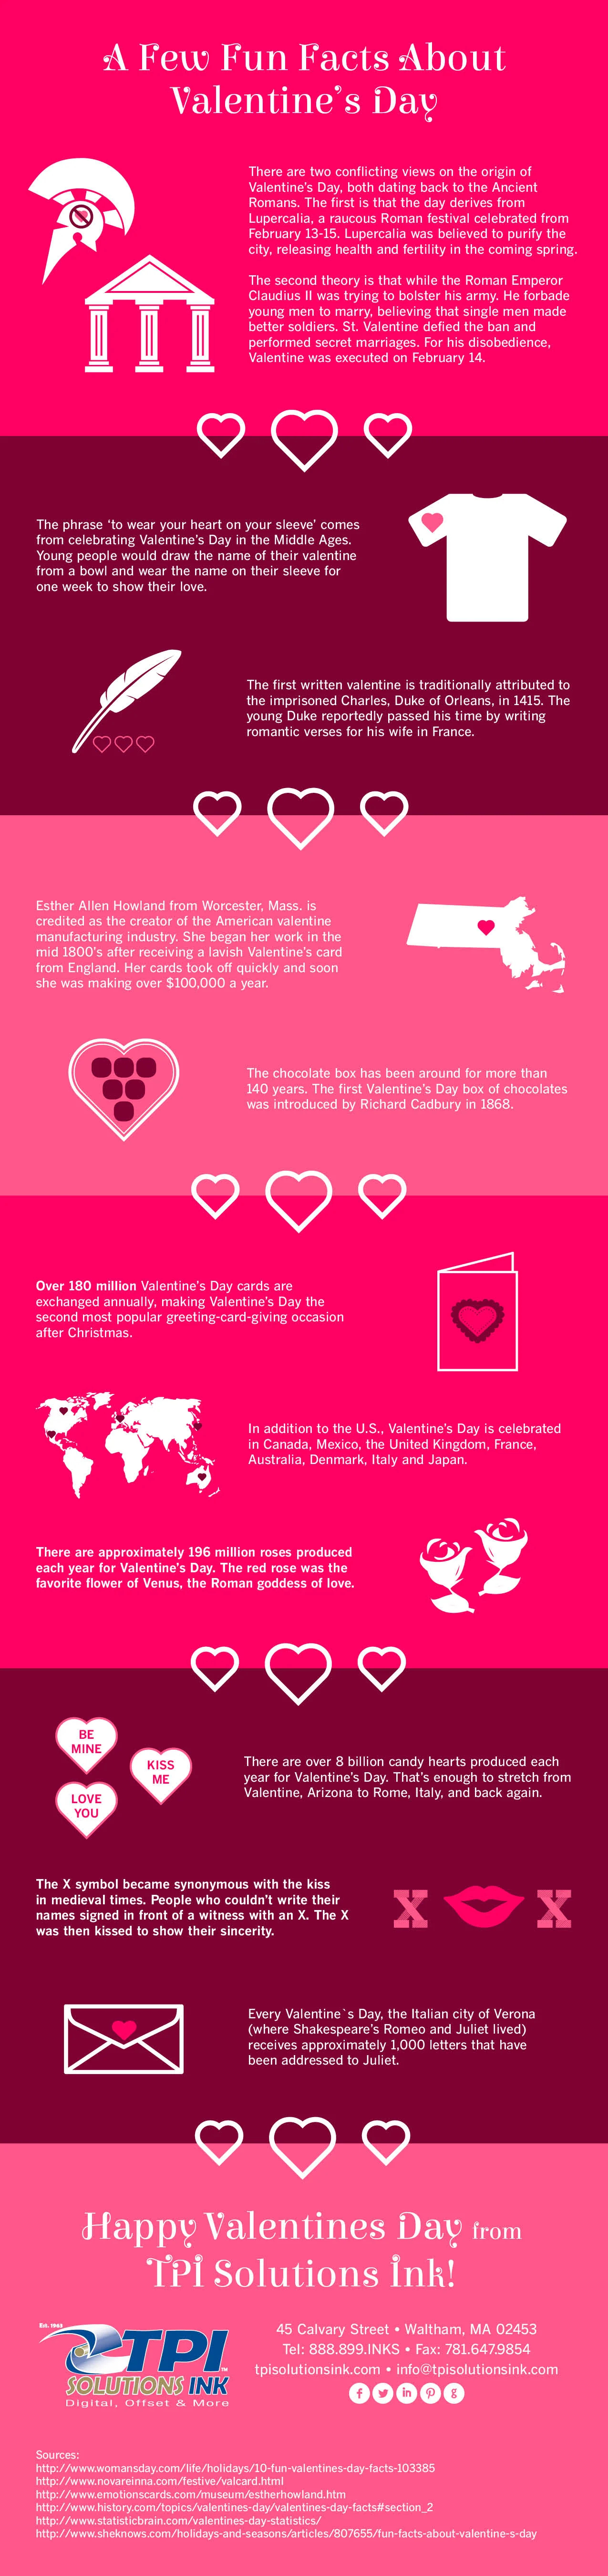 A Few Fun Facts About Valentine's Day